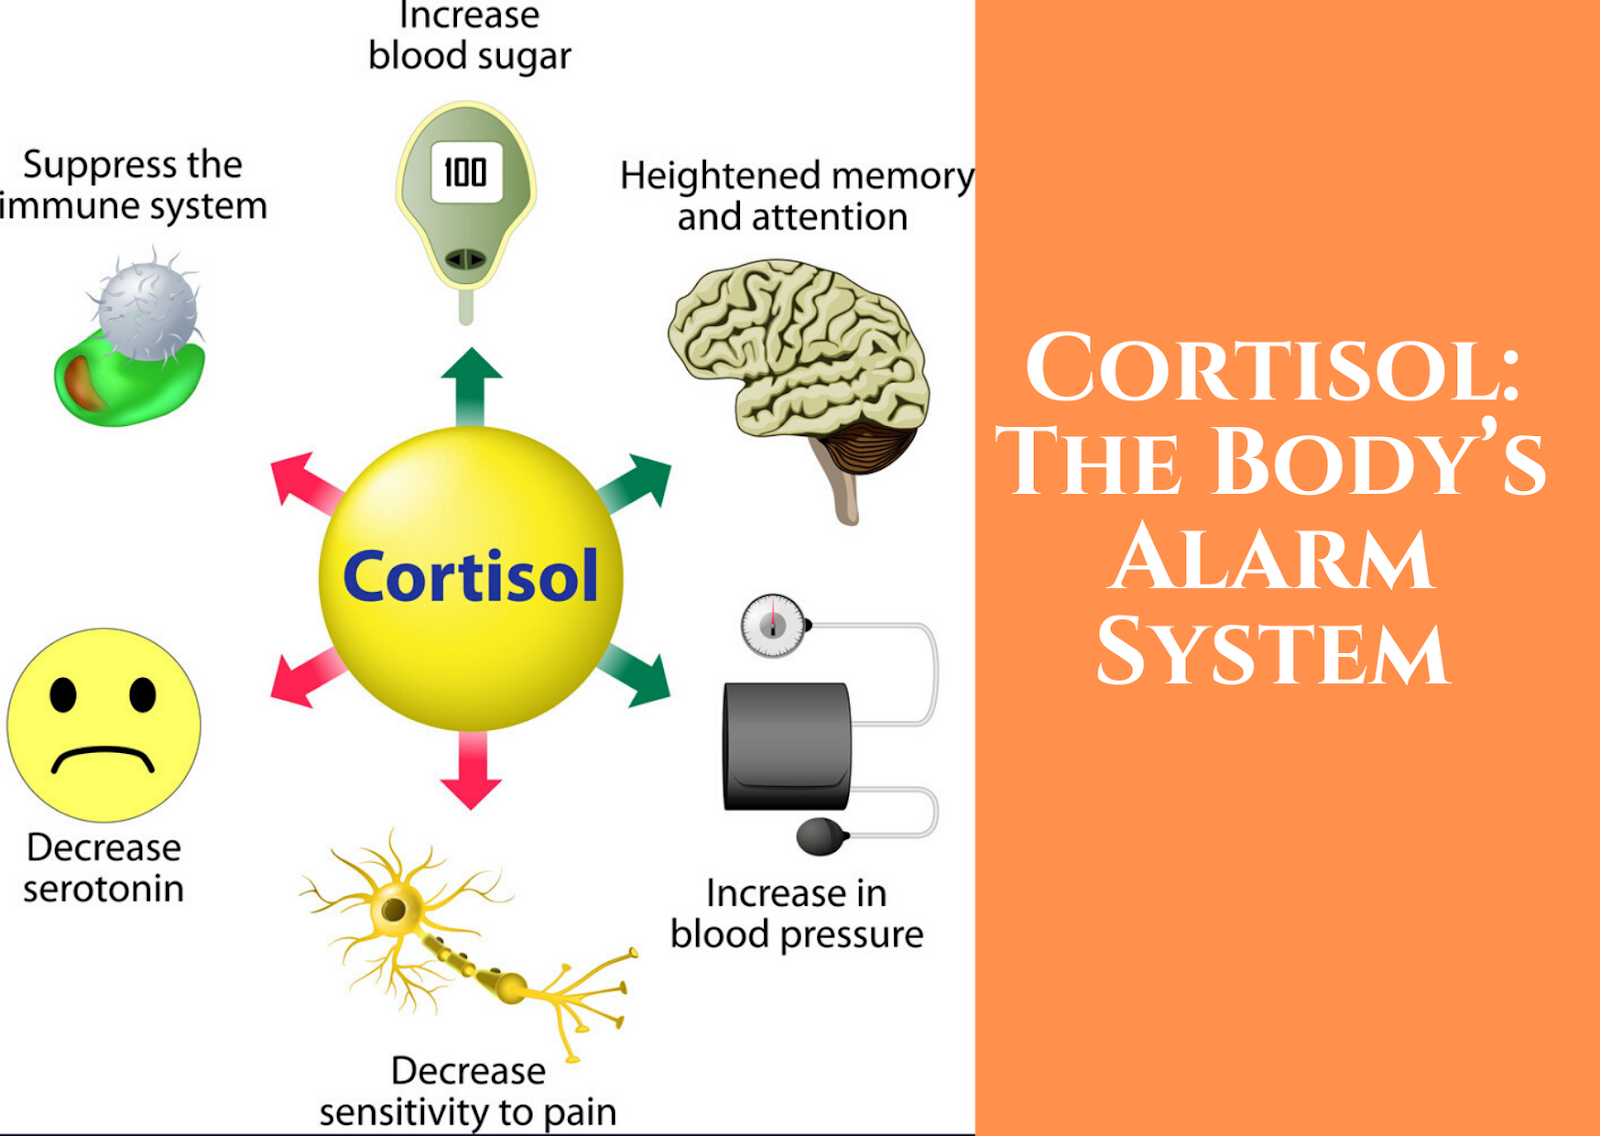 Get Control of Your Cortisol